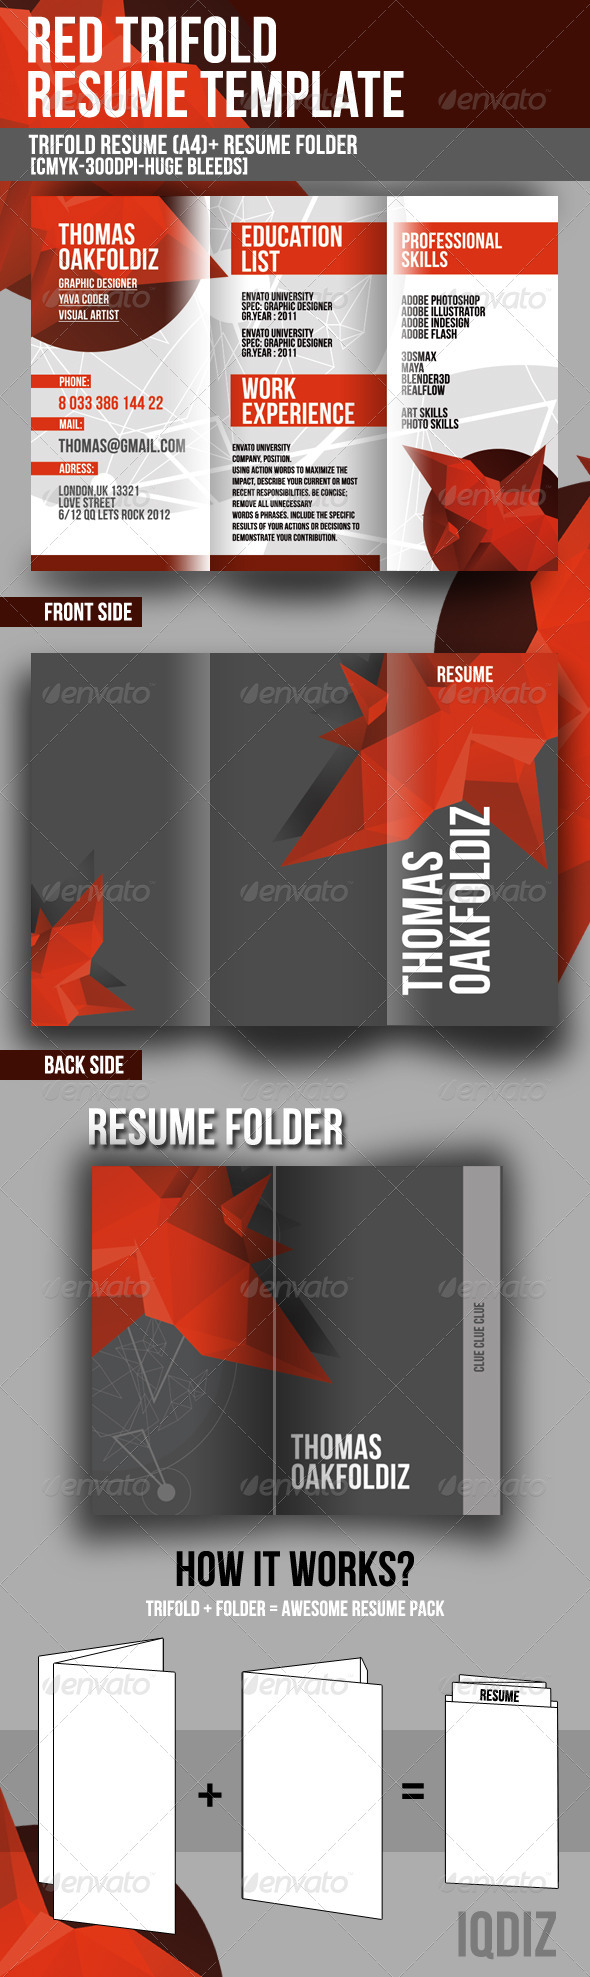 Red Trifold Resume Template - Resumes Stationery